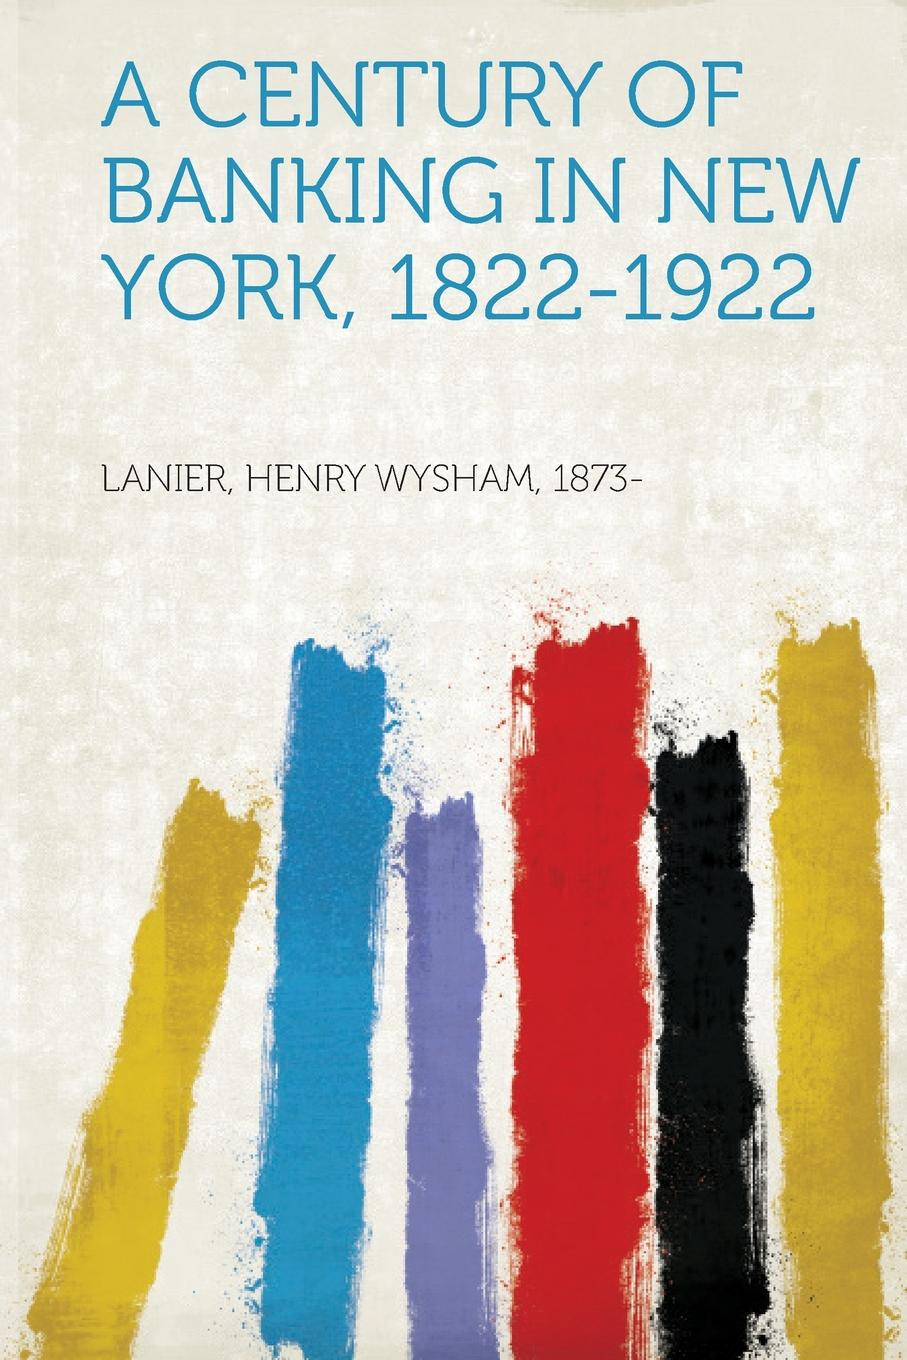 Lanier Henry Wysham 1873- A Century of Banking in New York, 1822-1922